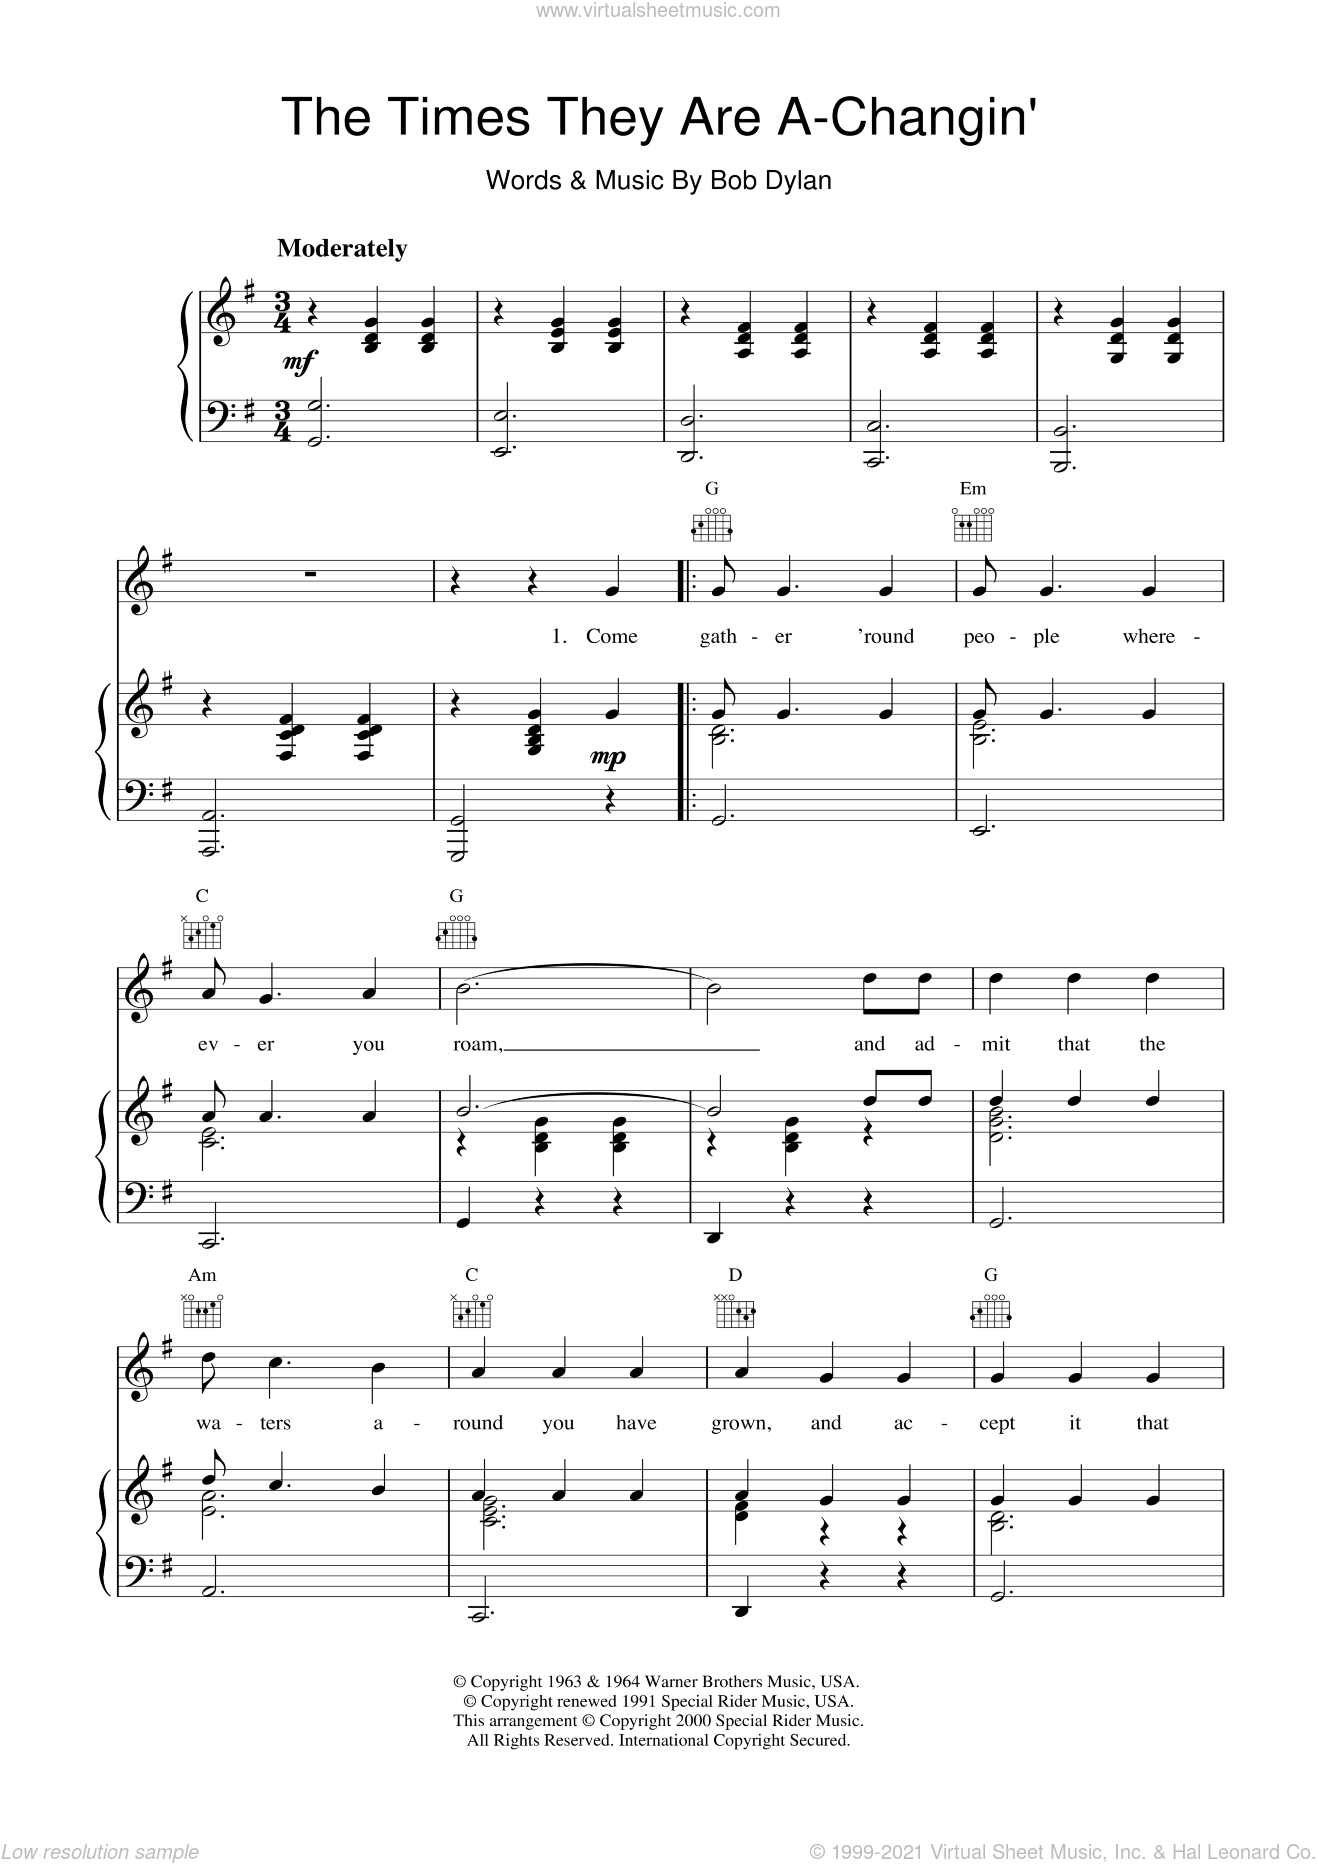 The Times They Are A-Changin' sheet music for voice, piano or guitar by Bob Dylan, intermediate skill level